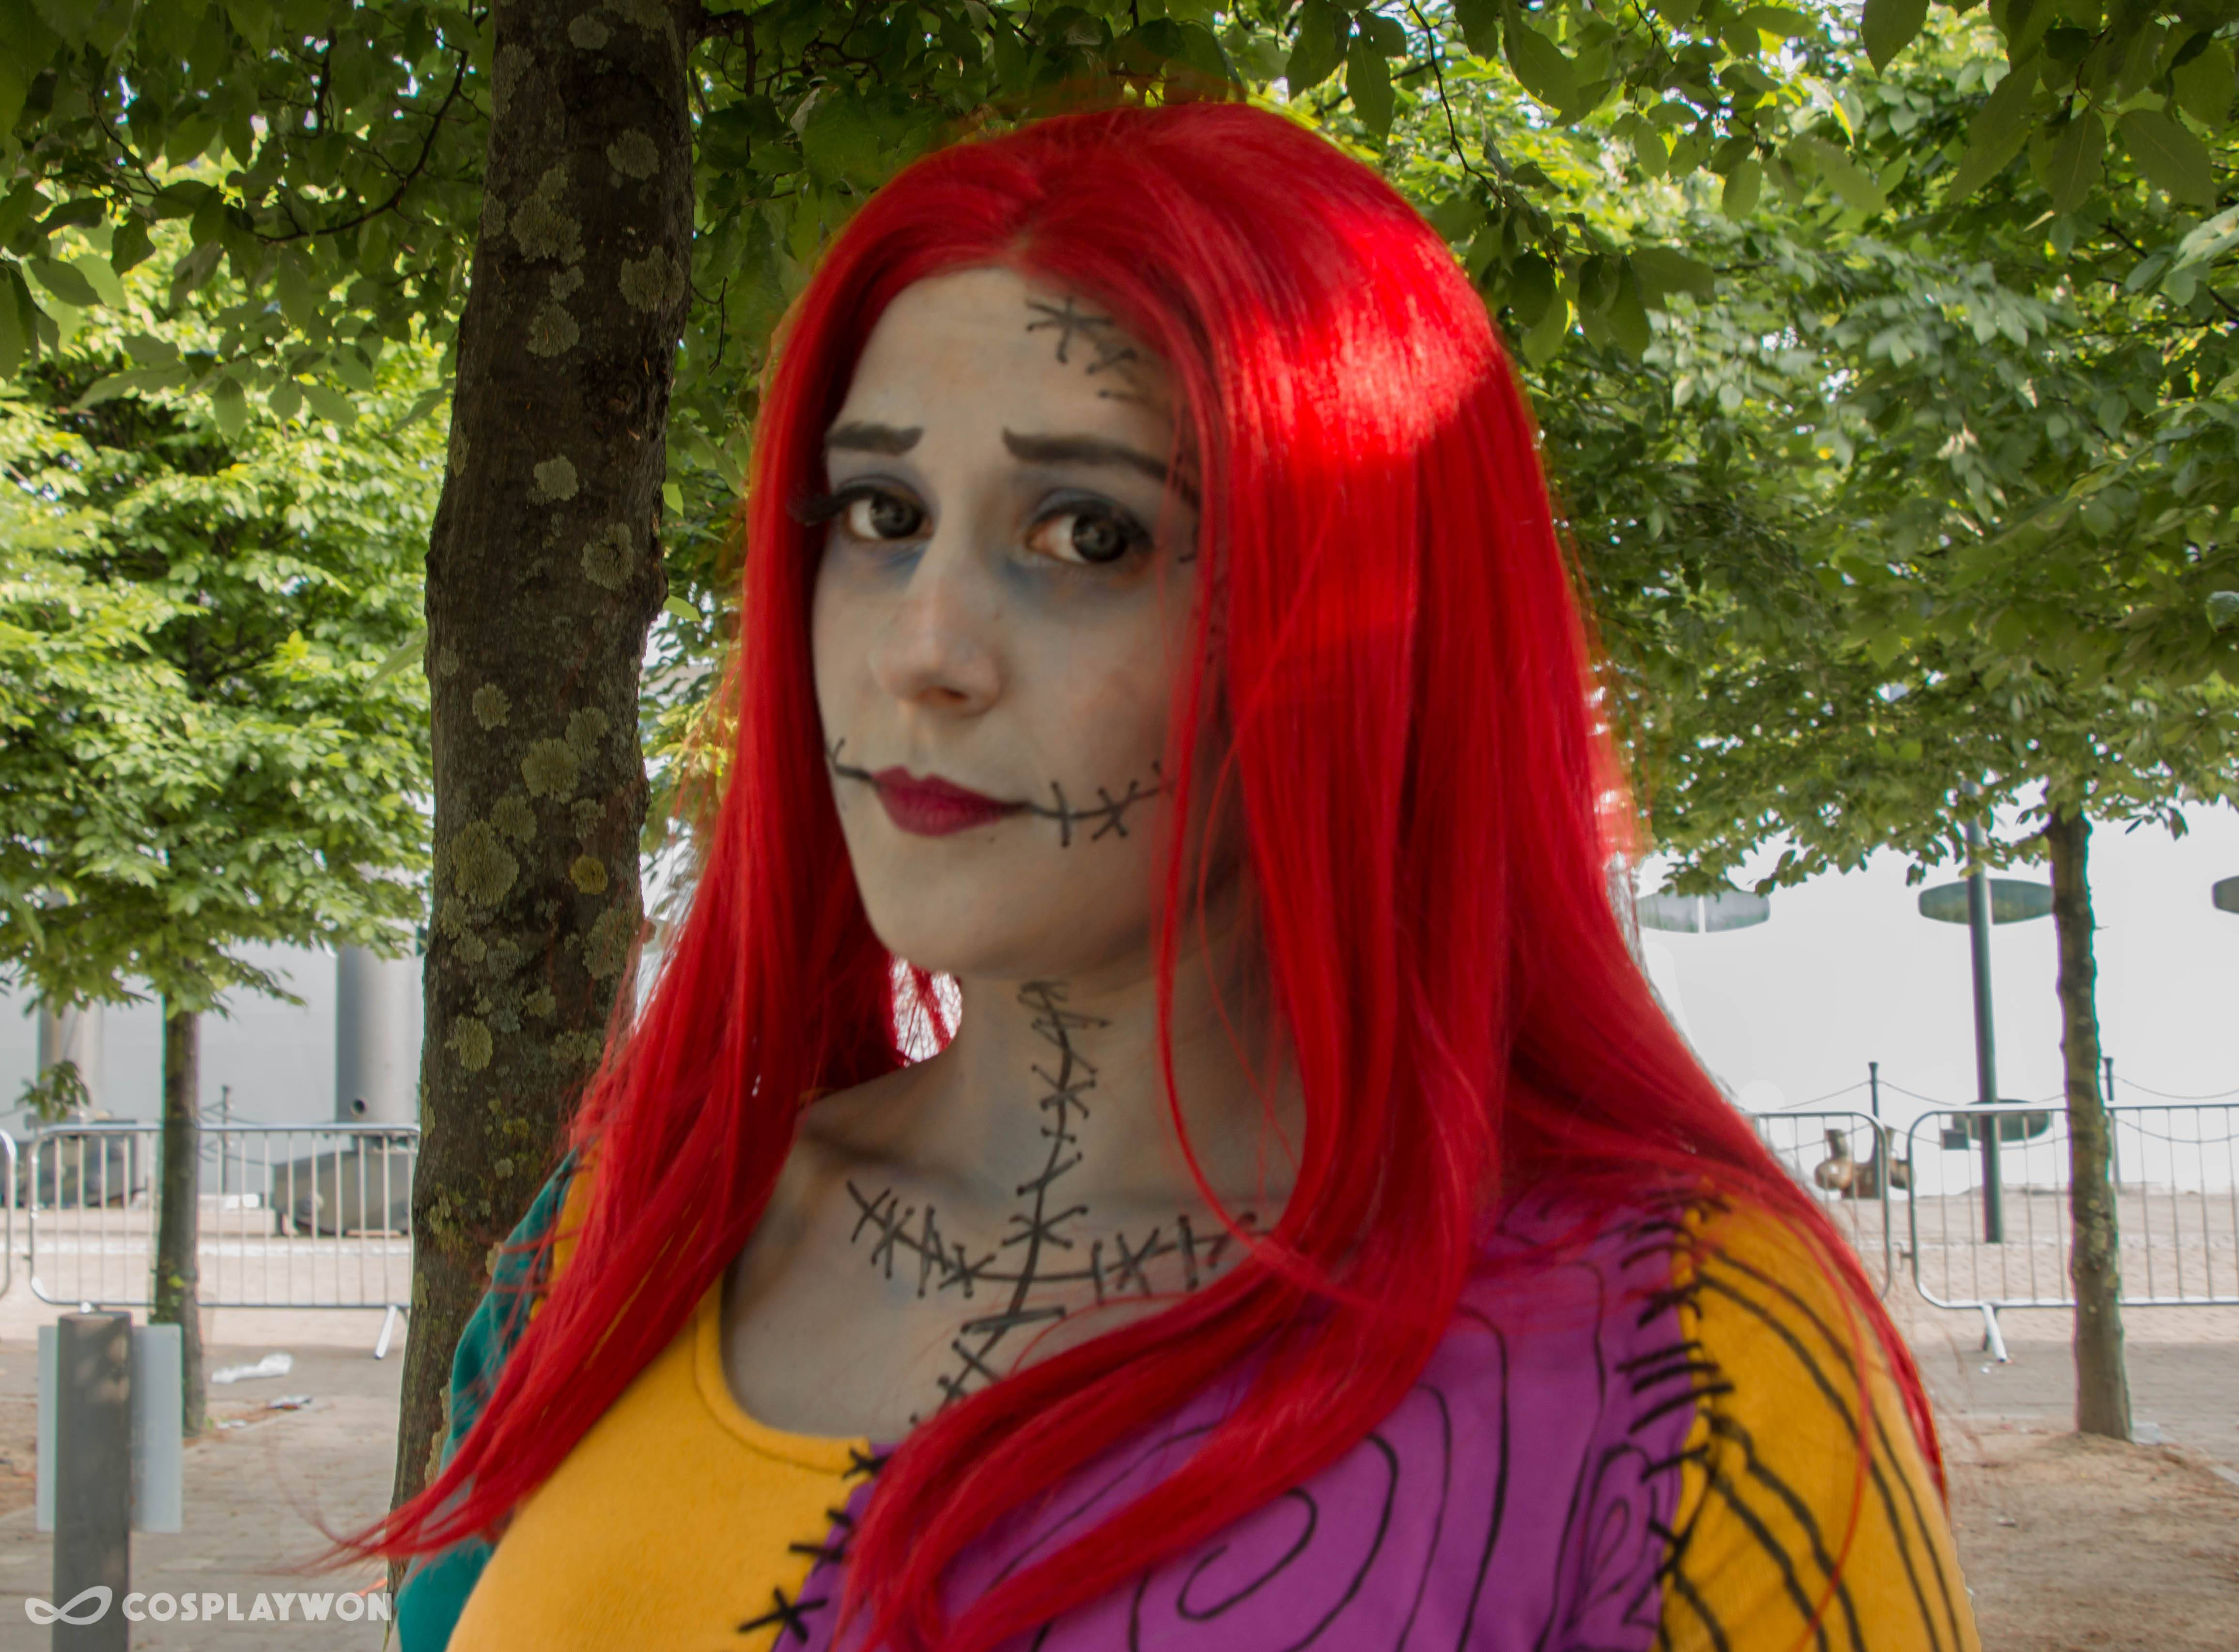 Sally Cosplay - Nightmare Before Christmas Cosplay - CosplayWon